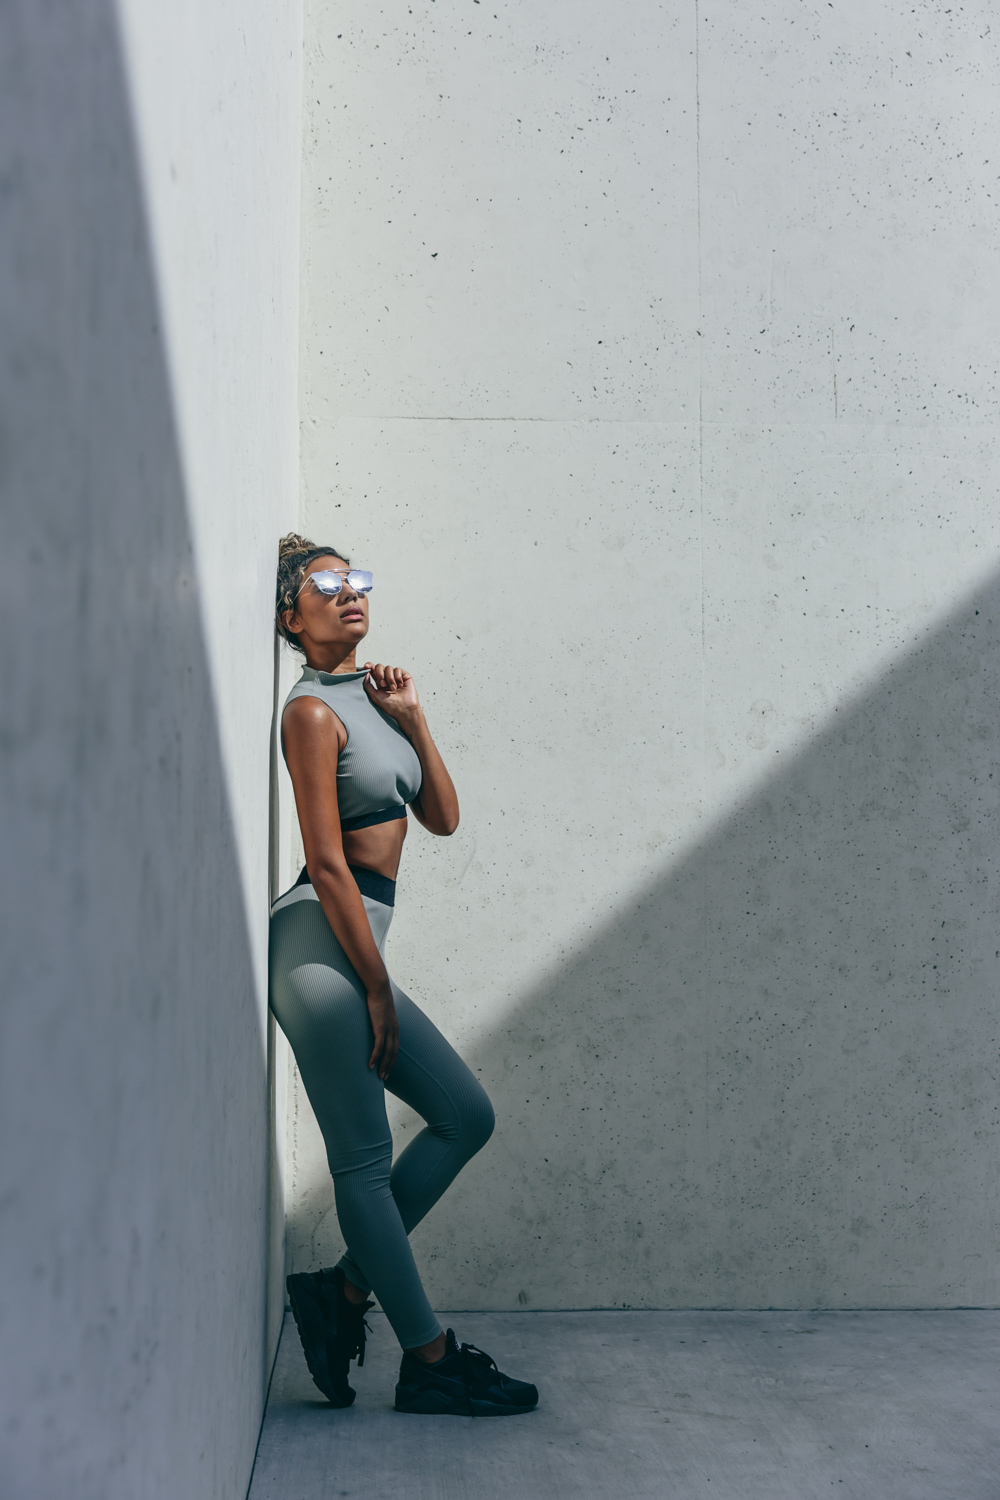 Year of Ours Sports portraits by Jenny Siegwart: Woman leaning against the wall